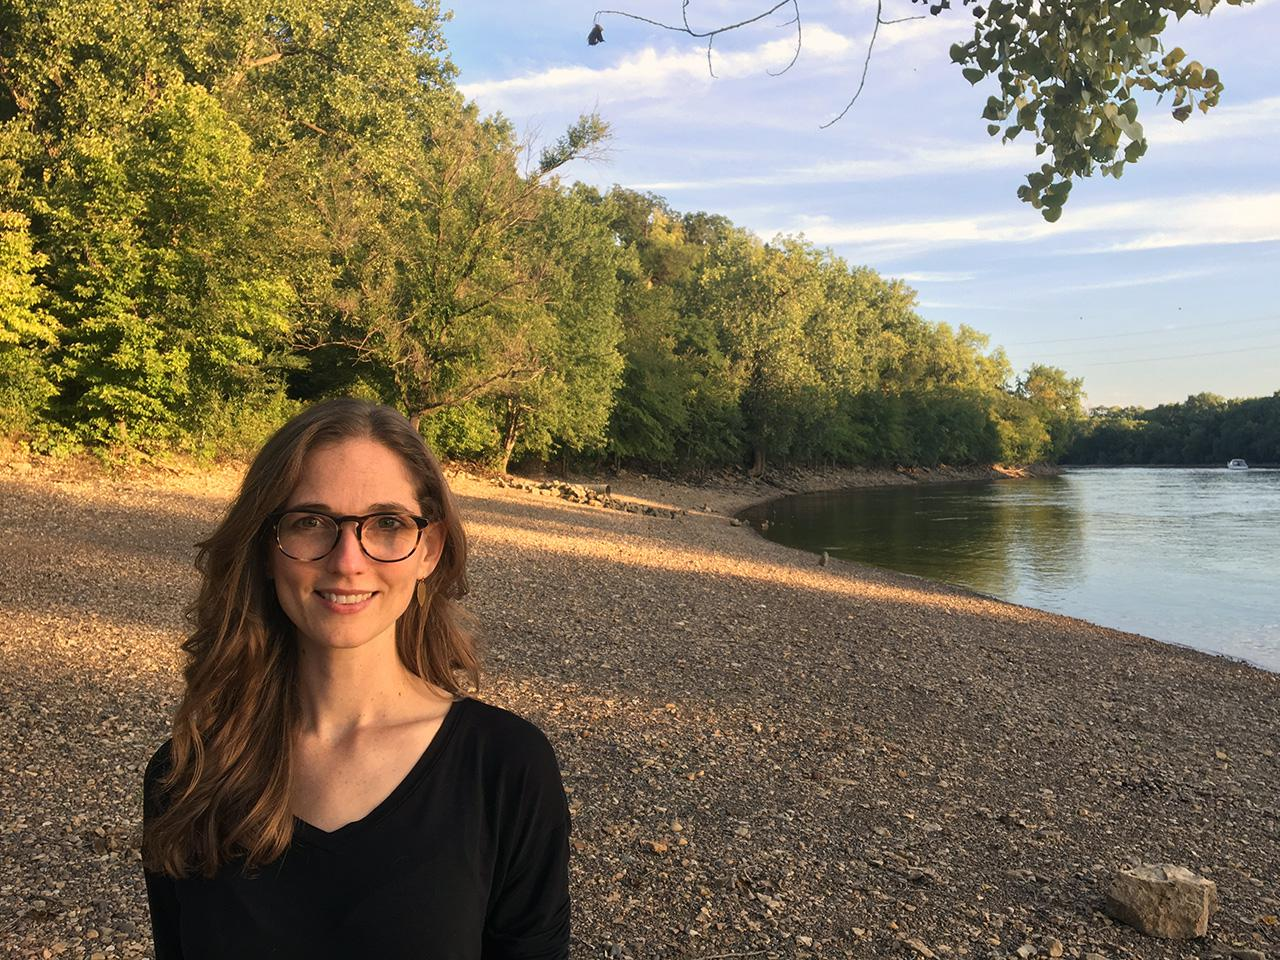 Ellen Rogers Communications Associate at Friends of the Mississippi River